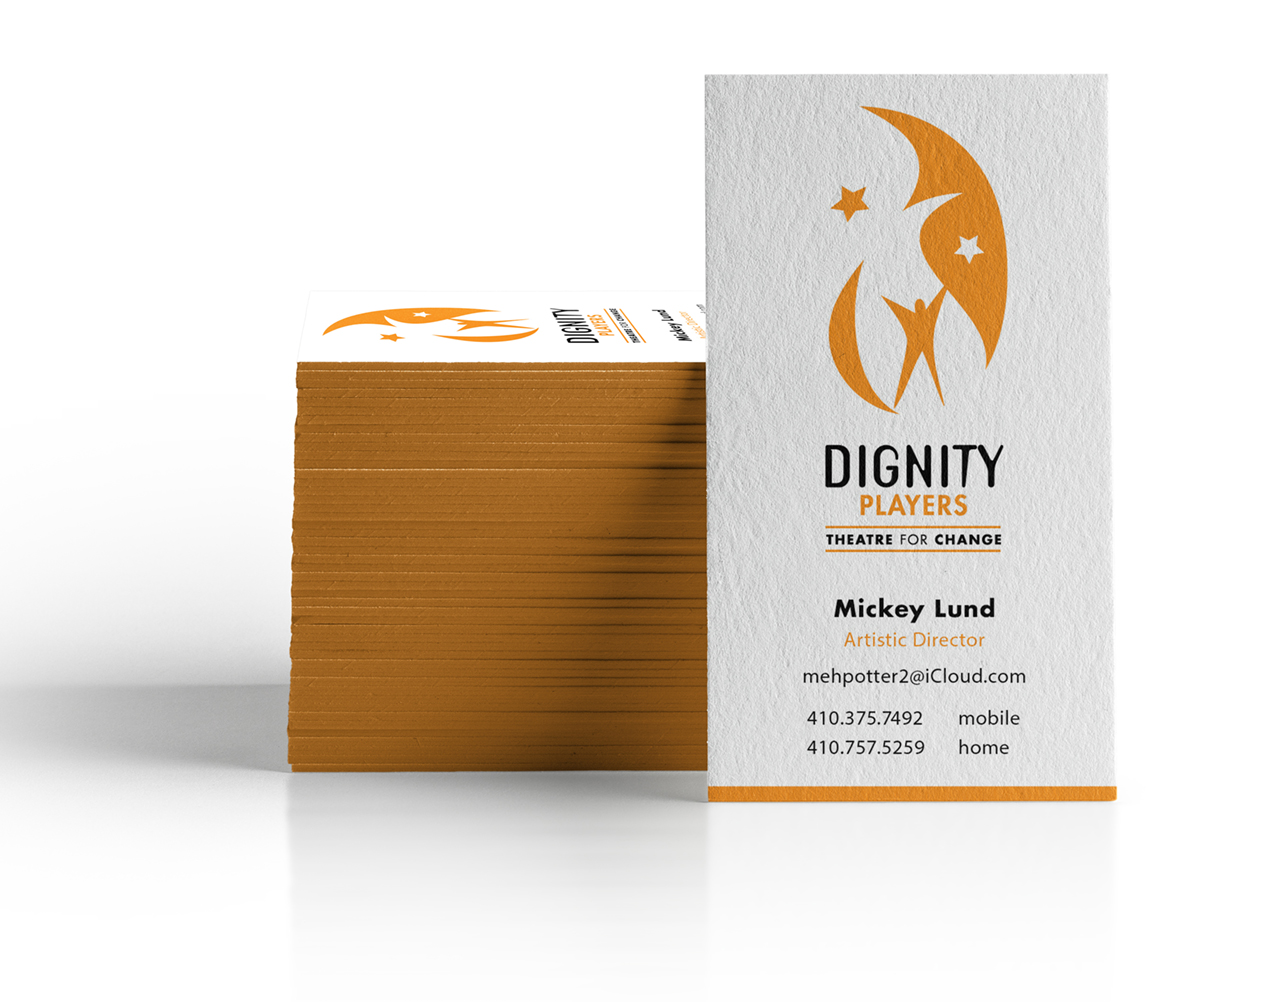 Business-Card-Branding-Mockup smaller copy.jpg